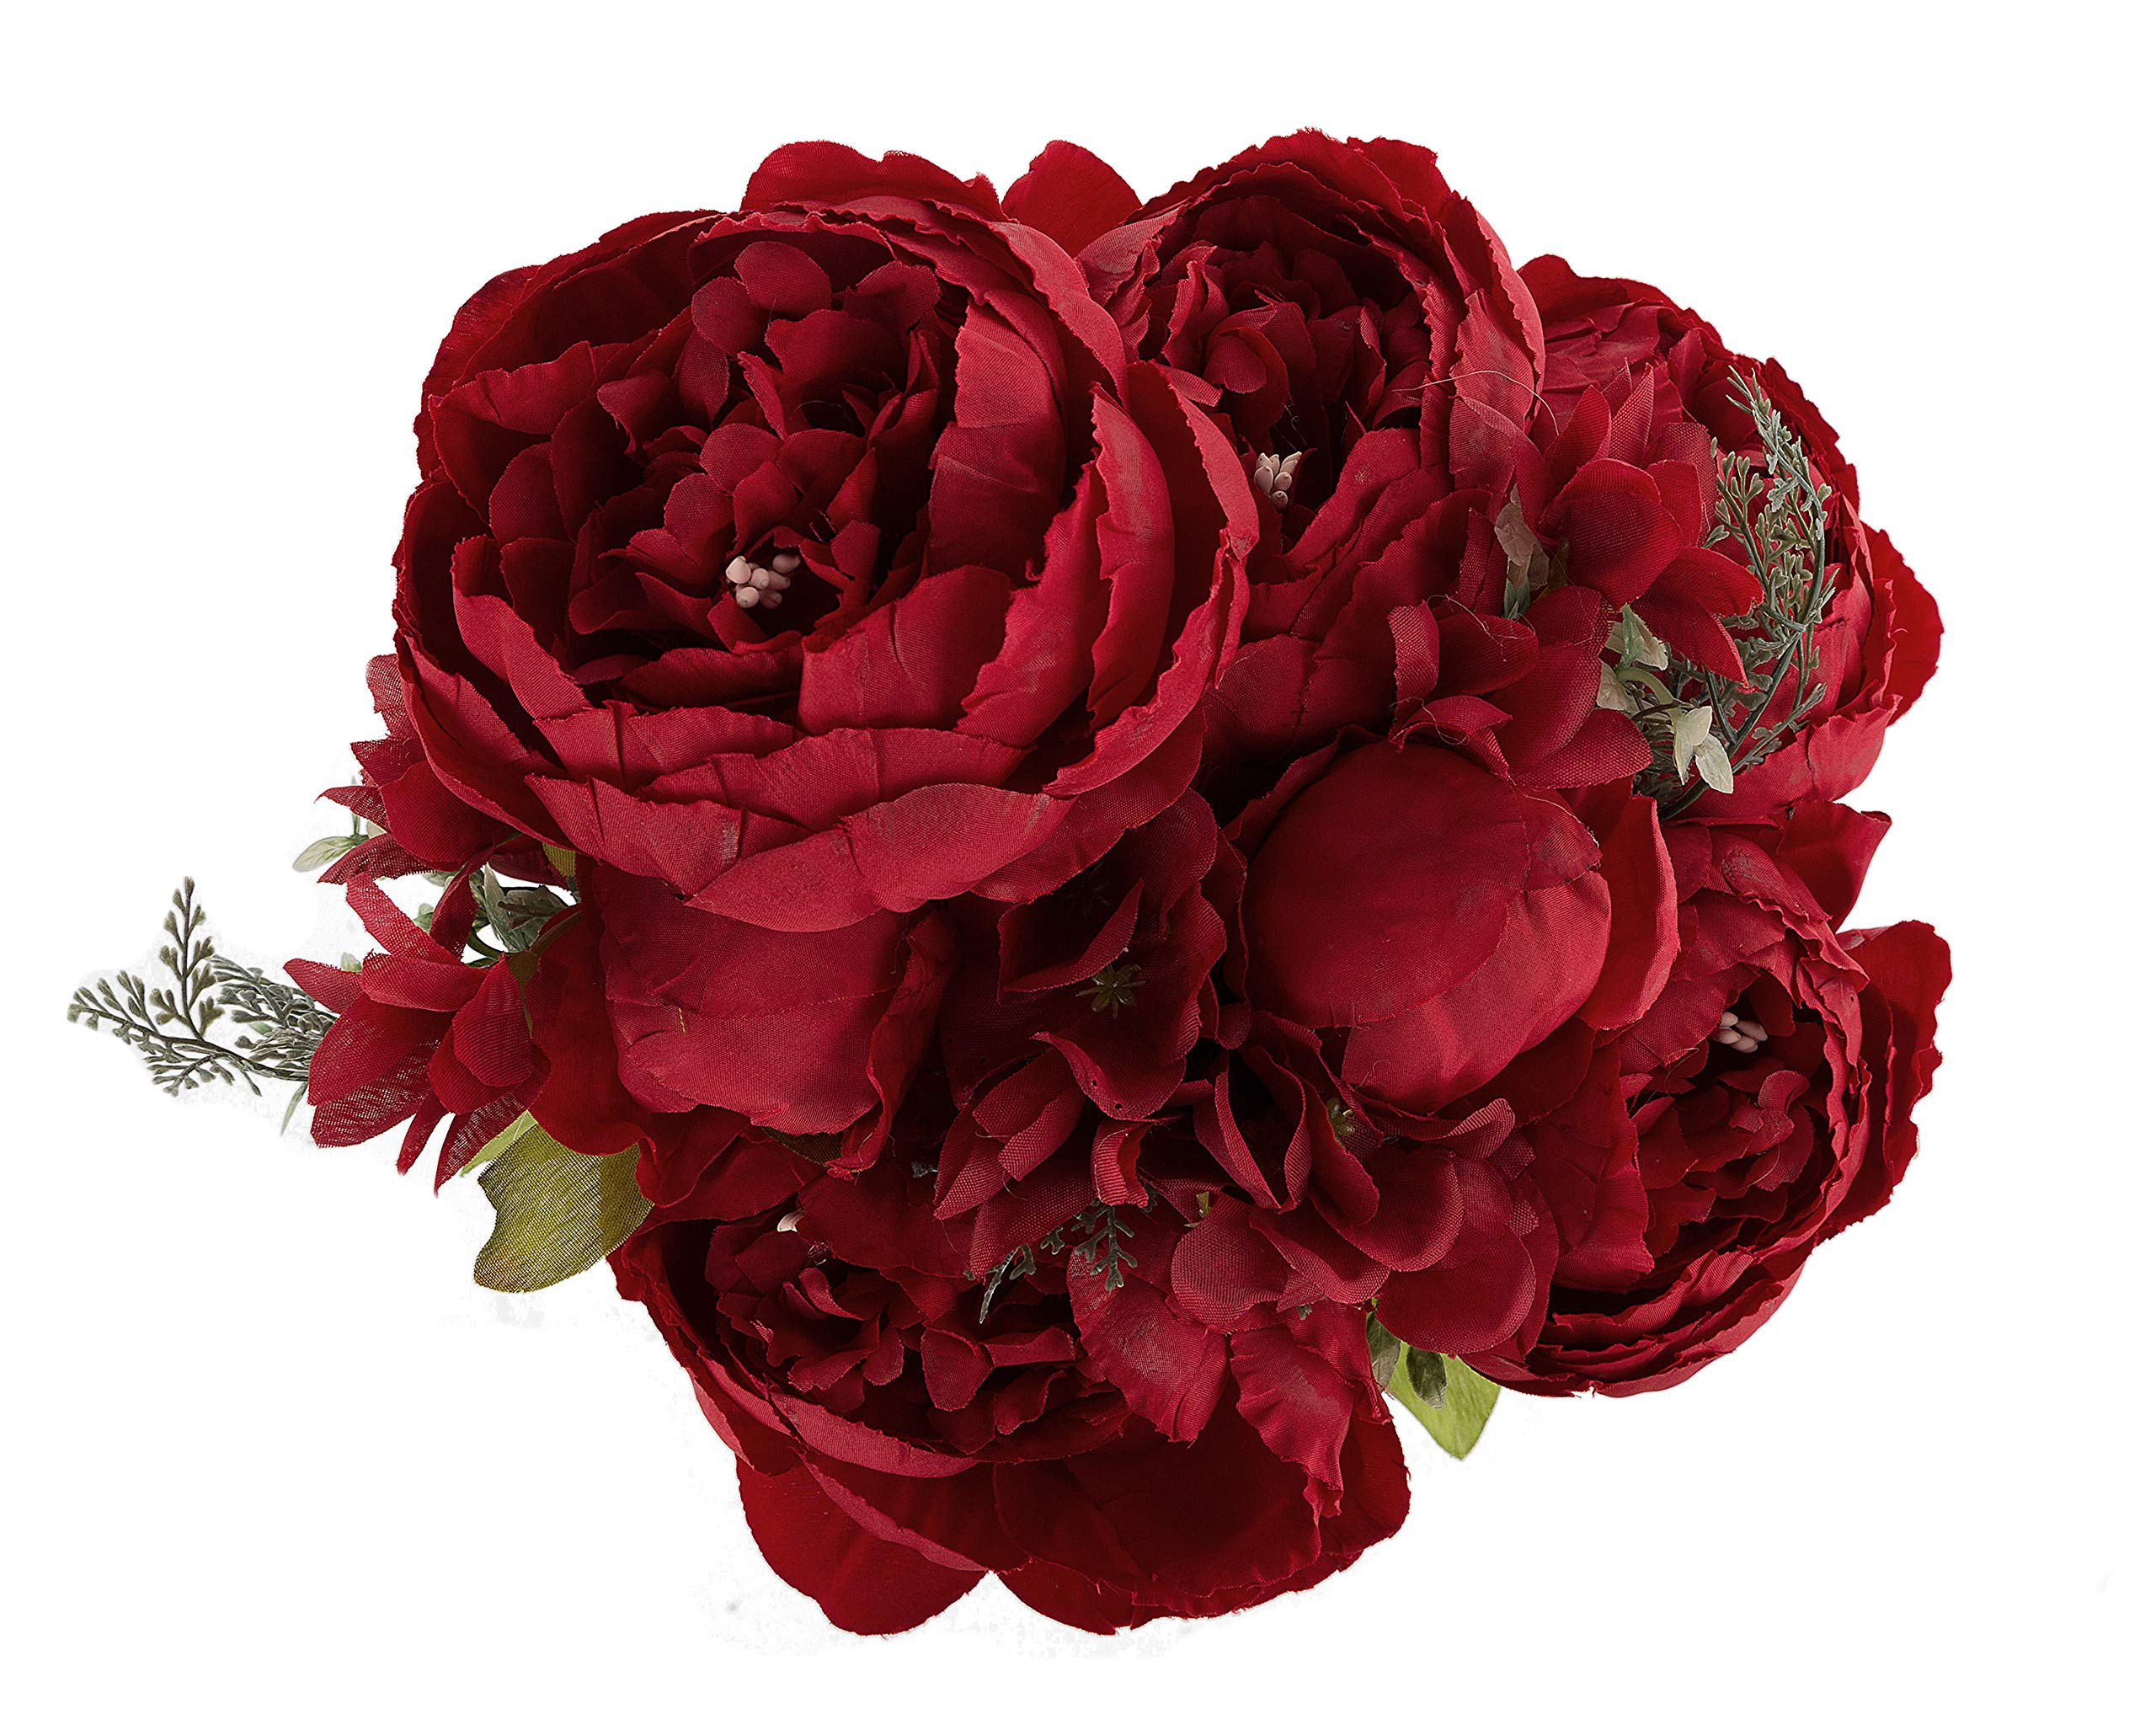 Astonishing Ezflowery 1 Pack Artificial Peony Silk Flowers Arrangement Bouquet For Wedding Centerpiece Room Party Home Decoration Elegant Vintage Perfect For Interior Design Ideas Clesiryabchikinfo